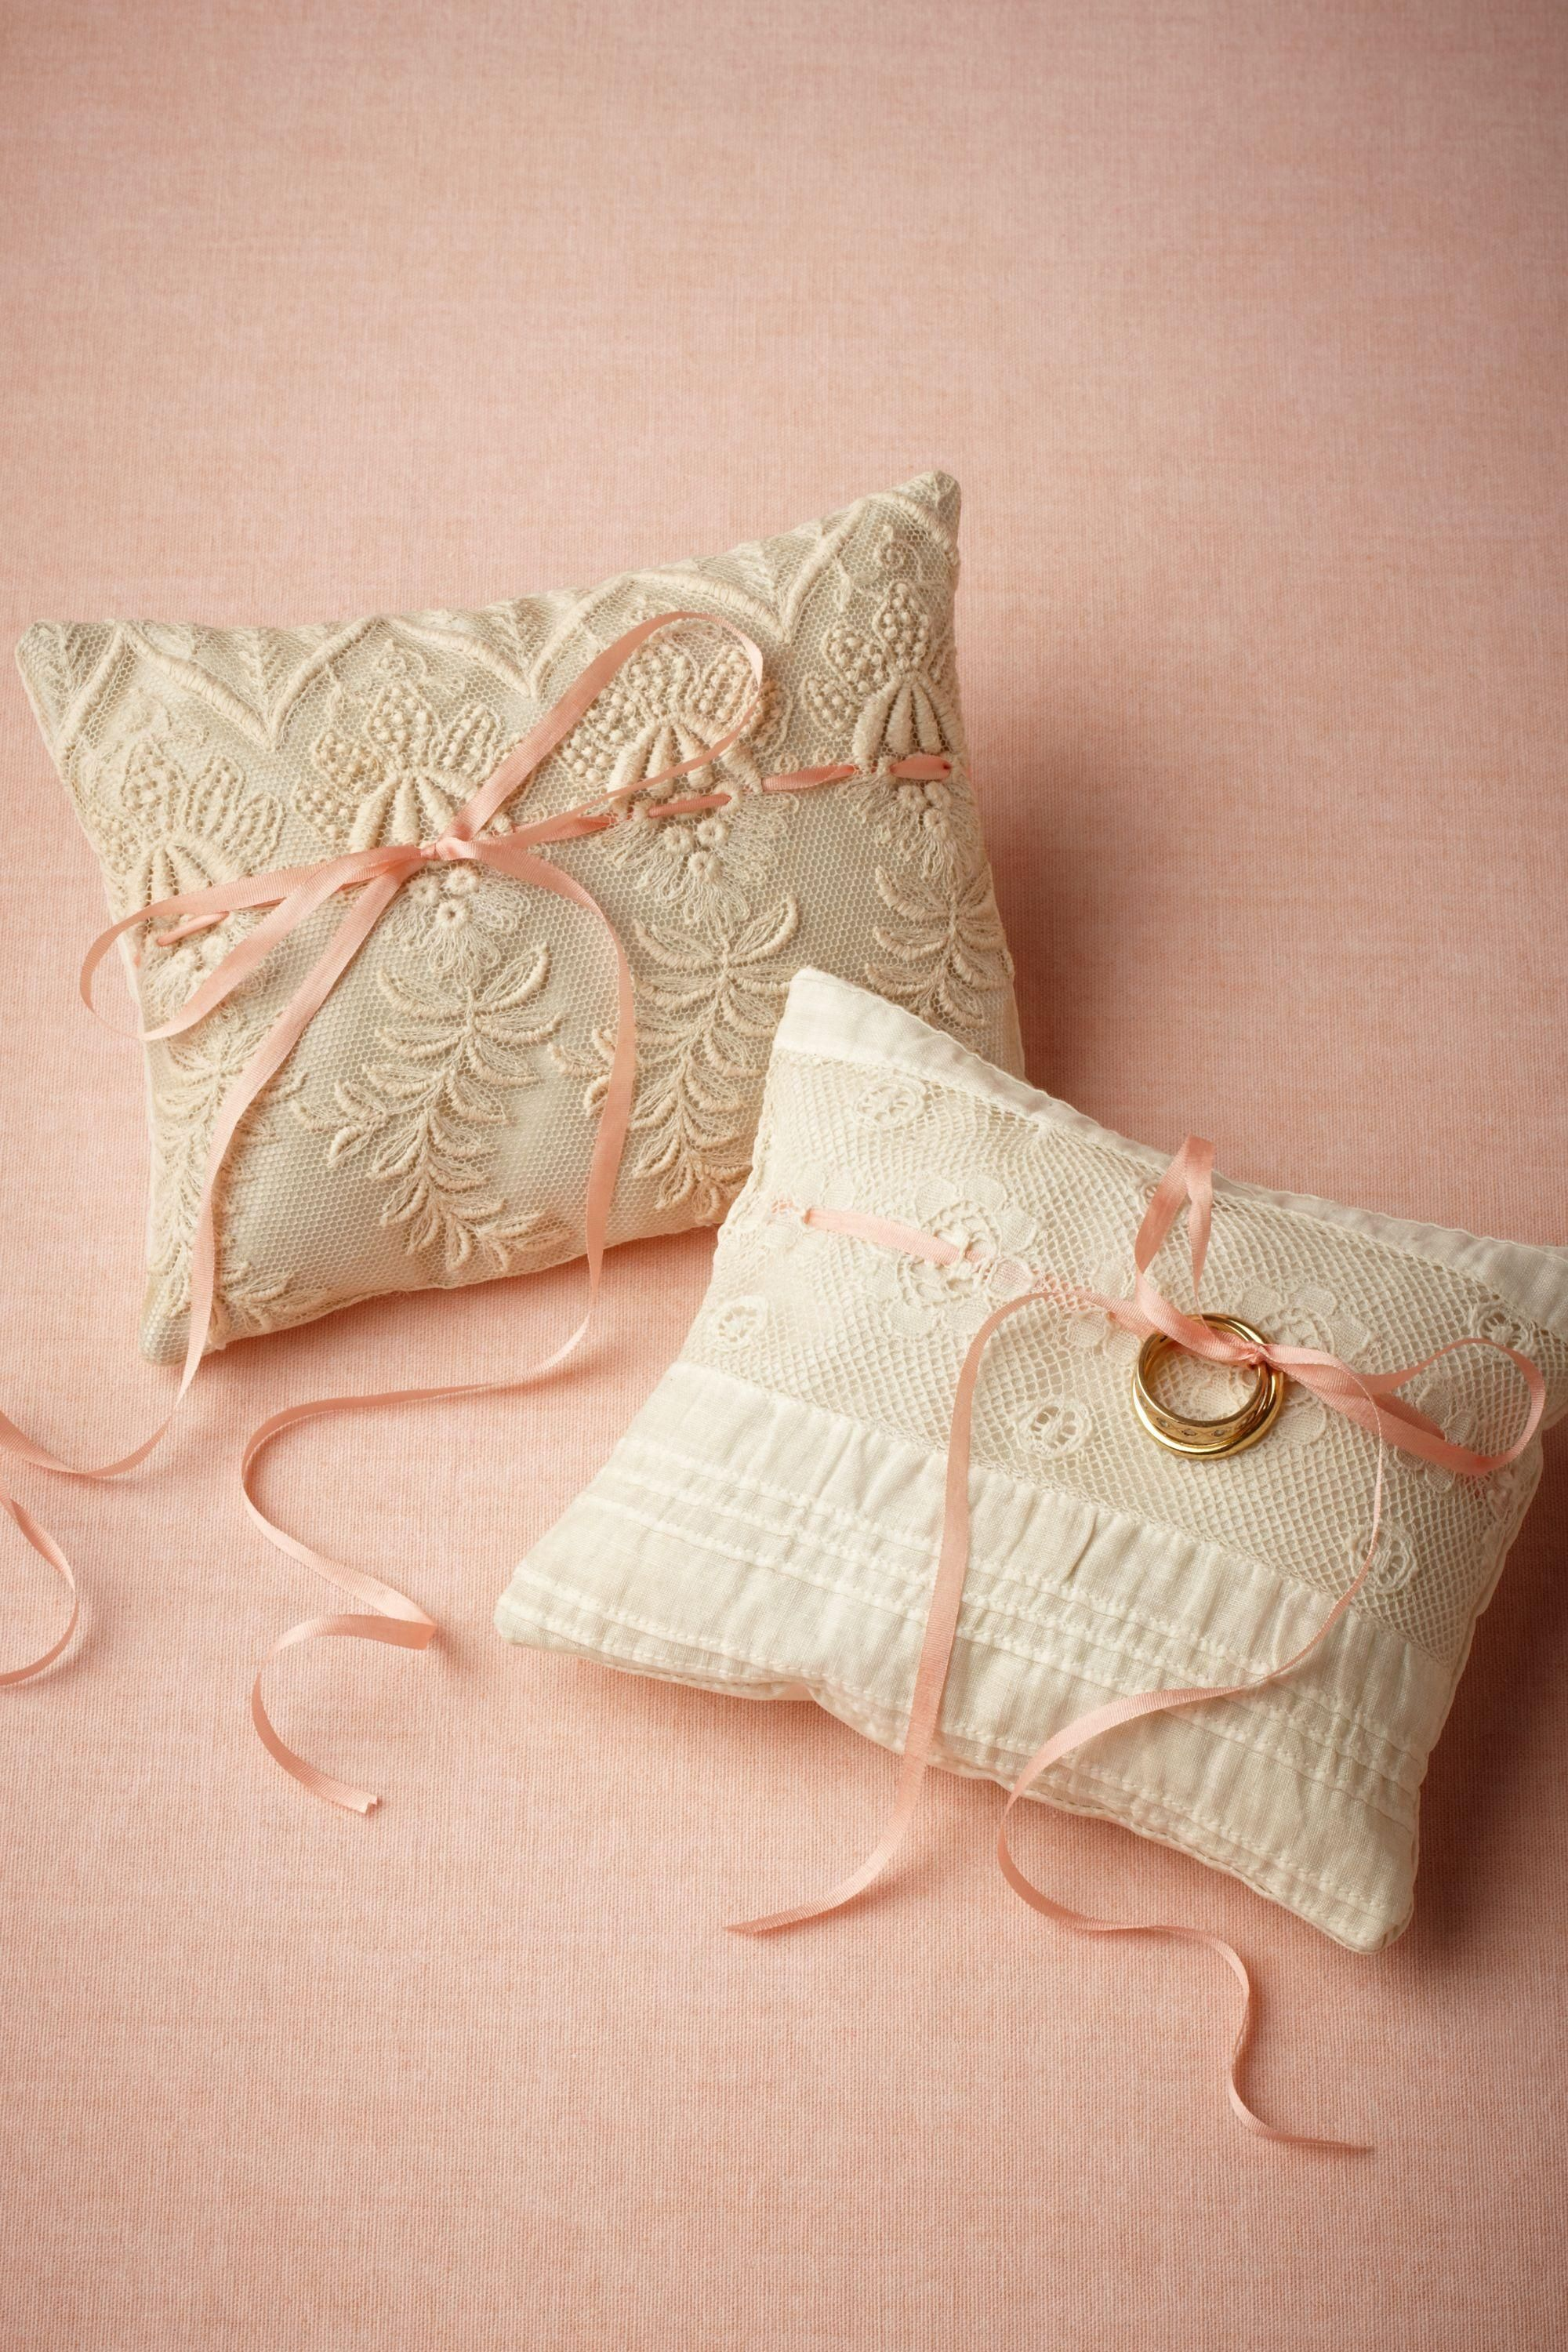 Use vintage lace to make ring pillows #wedding #DIY #ideas & Use vintage lace to make ring pillows #wedding #DIY #ideas ... pillowsntoast.com